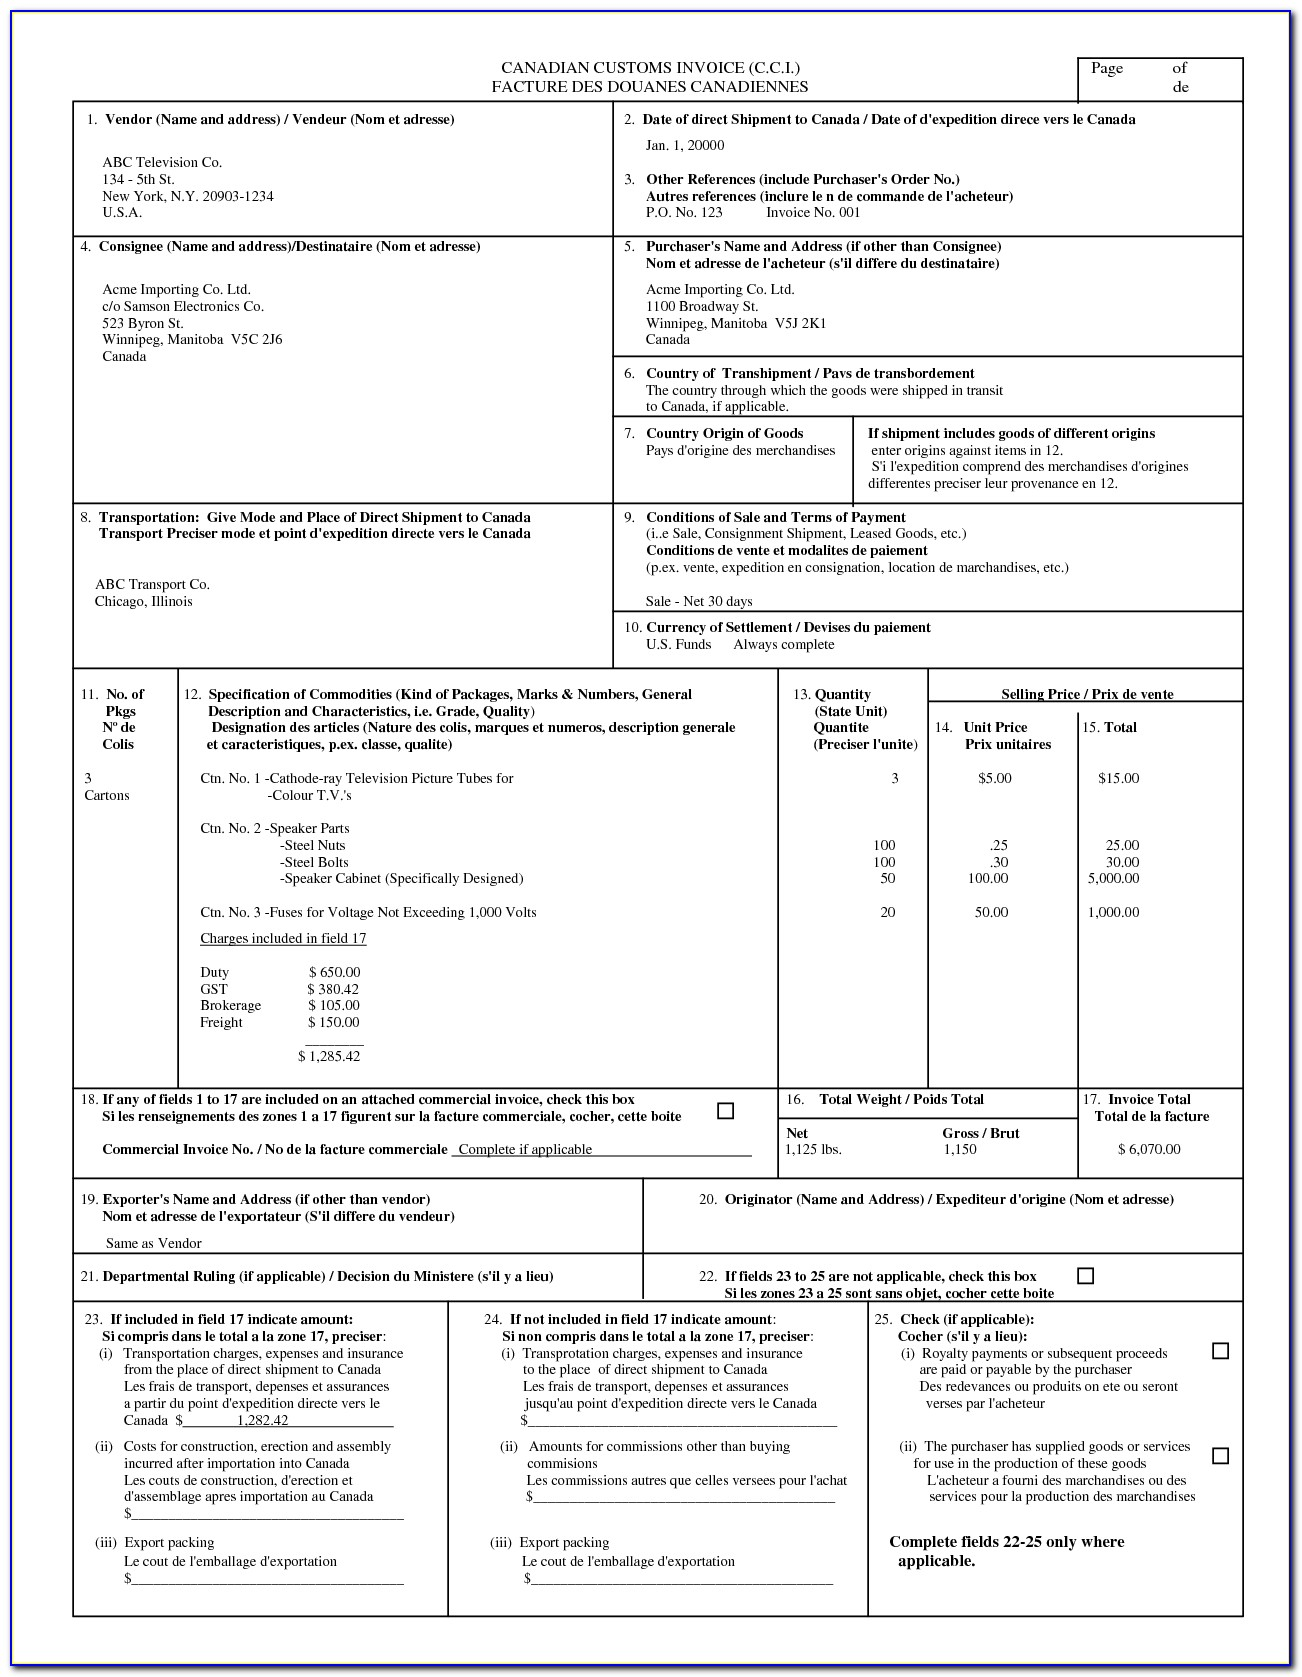 Livingston International Customs Invoice